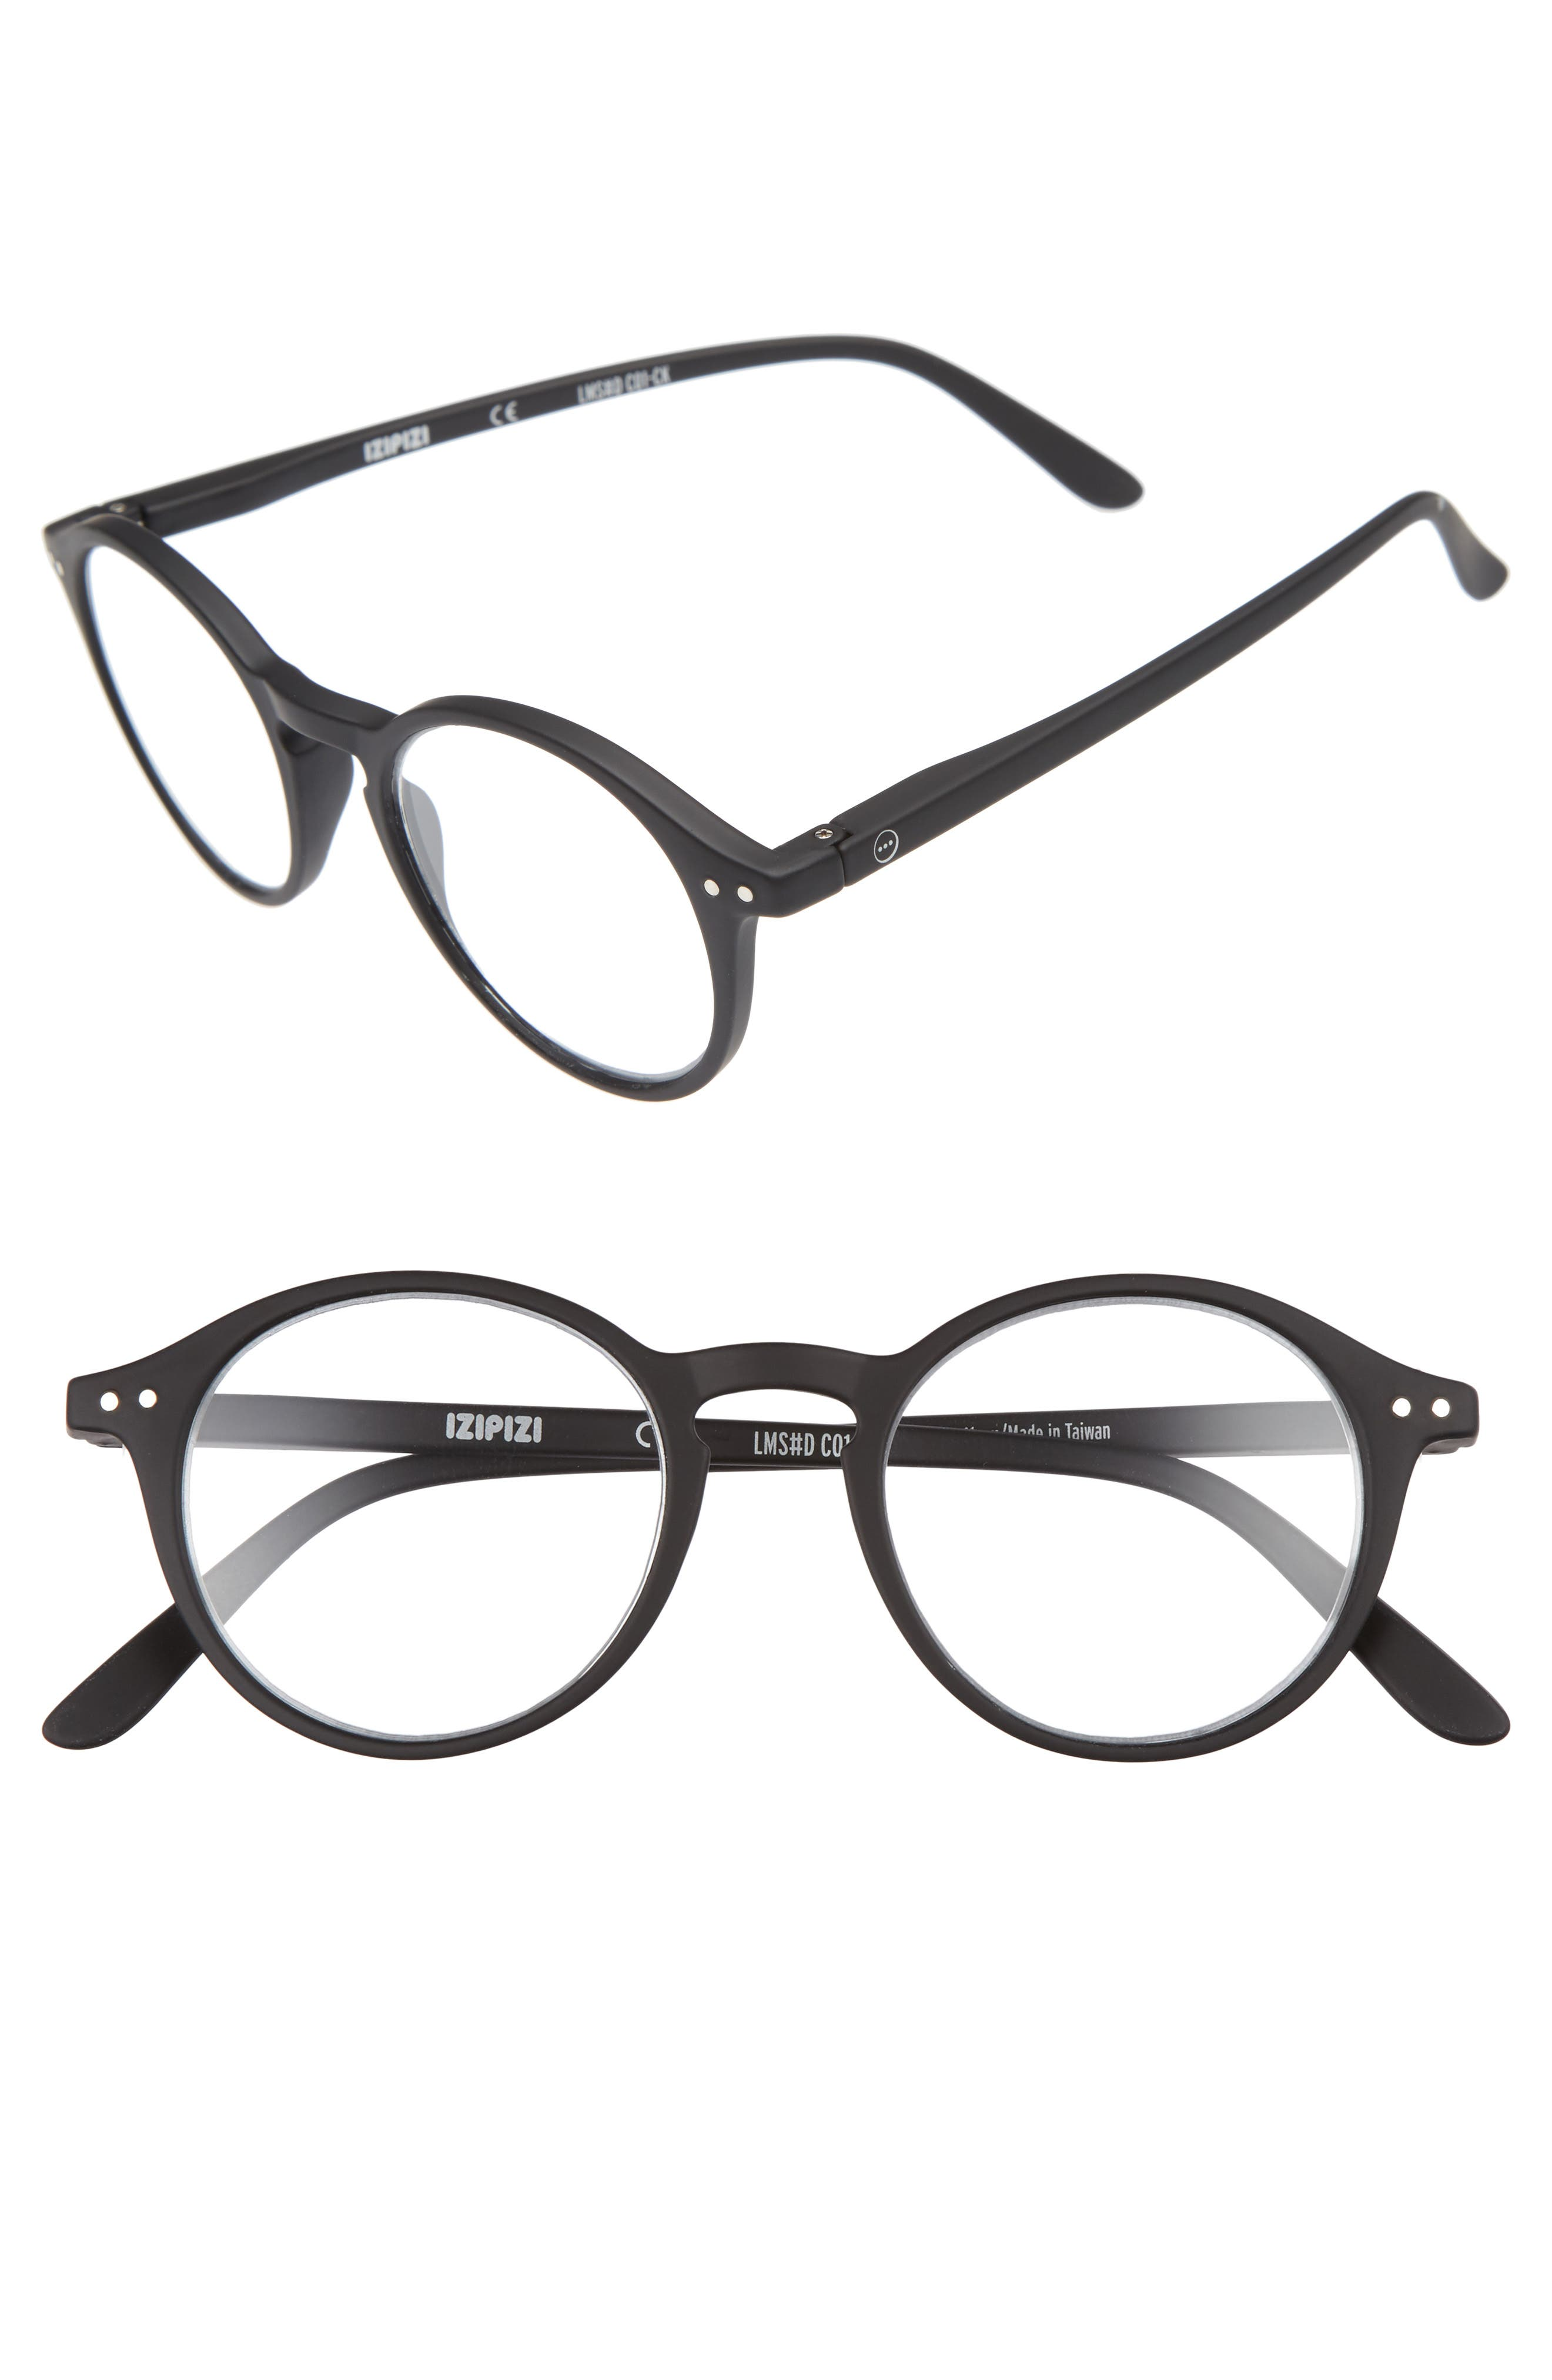 D 46mm Round Reading Glasses,                             Main thumbnail 1, color,                             001